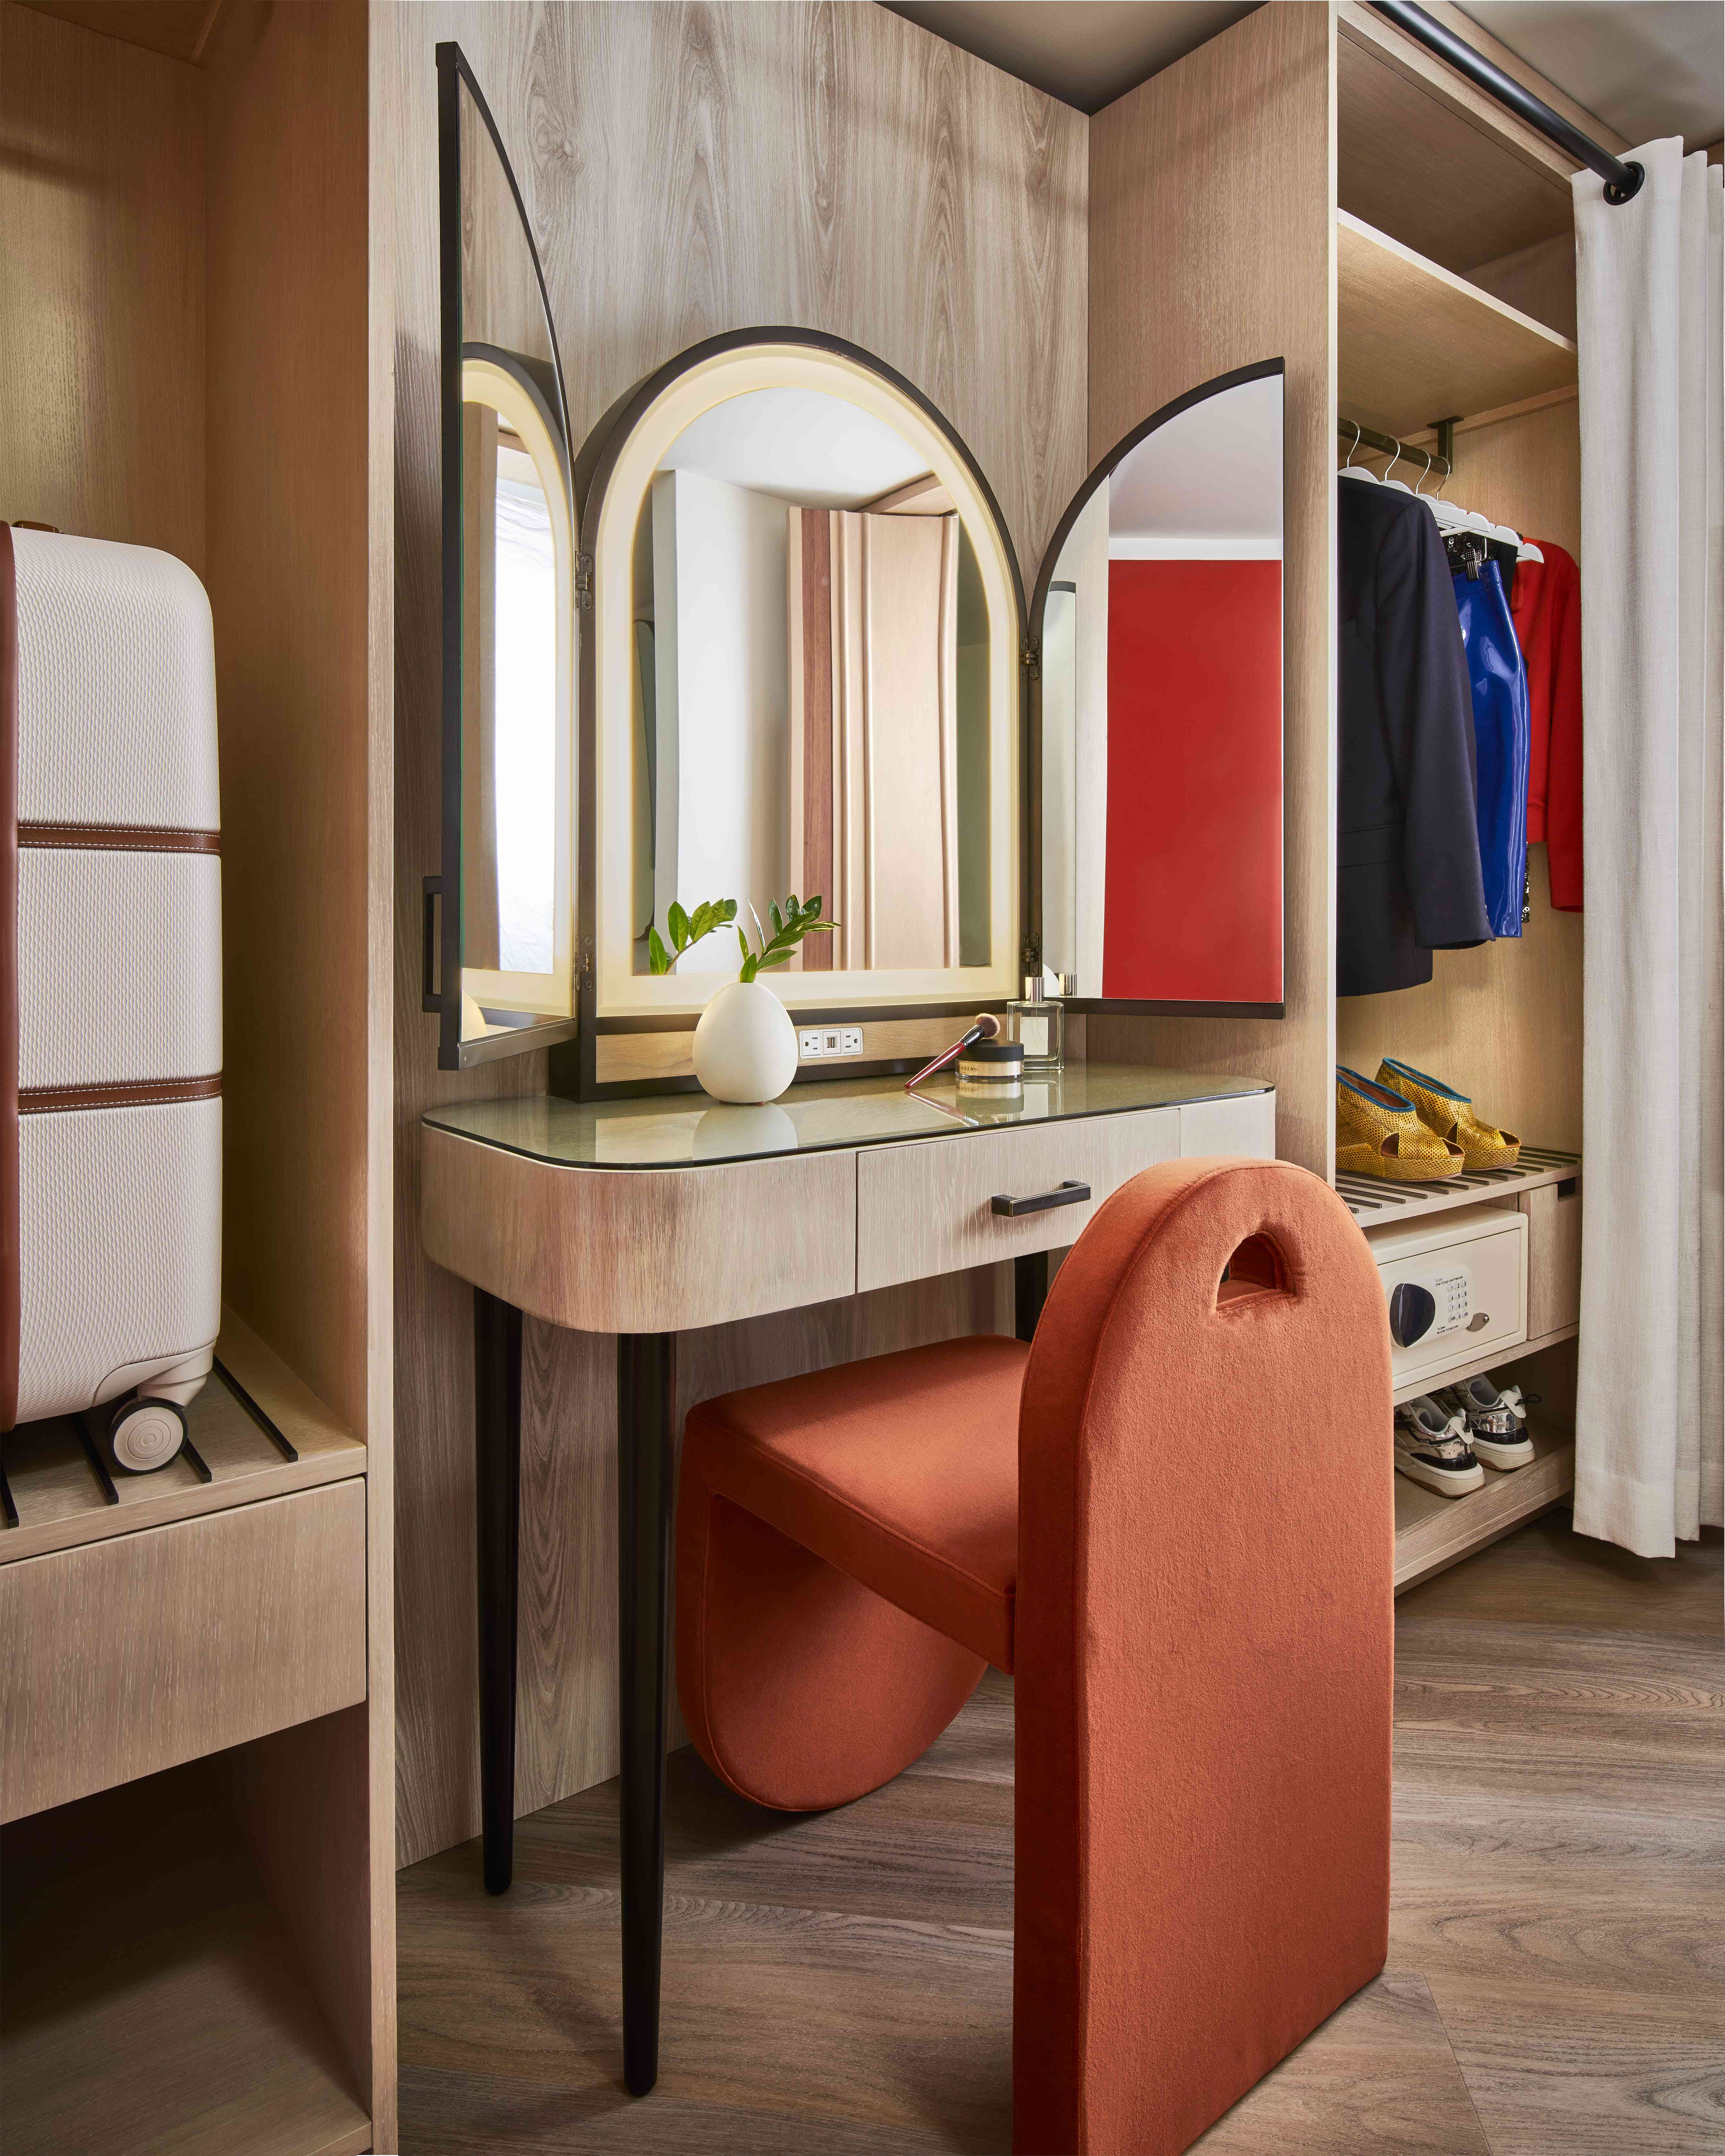 Vanity table with red accent chair at Virgin Hotels Las Vegas